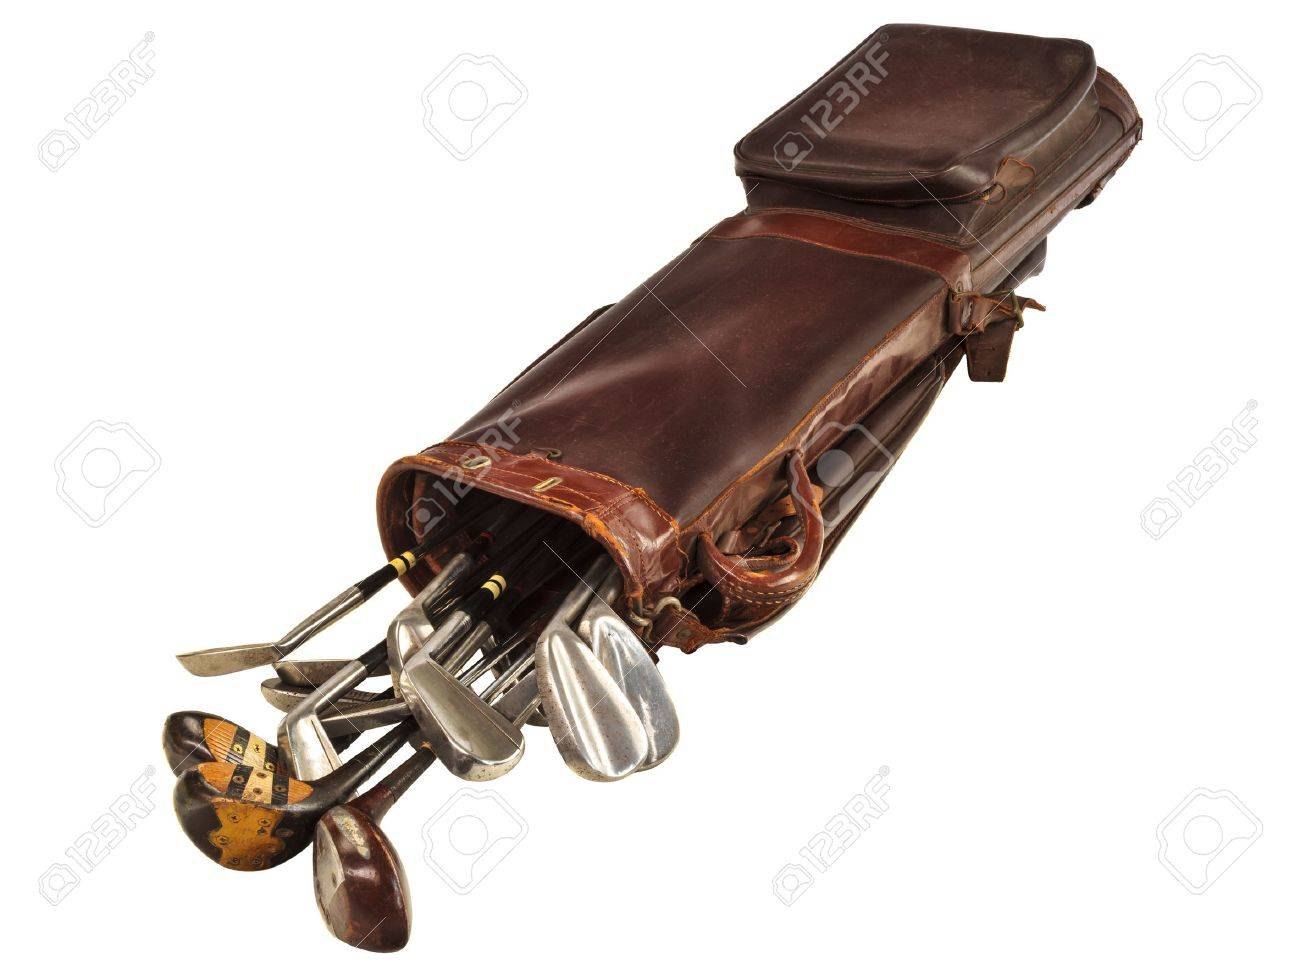 Antique brown leather bag with steel and wooden golf clubs isolated on a white background Stock Photo - 19795887